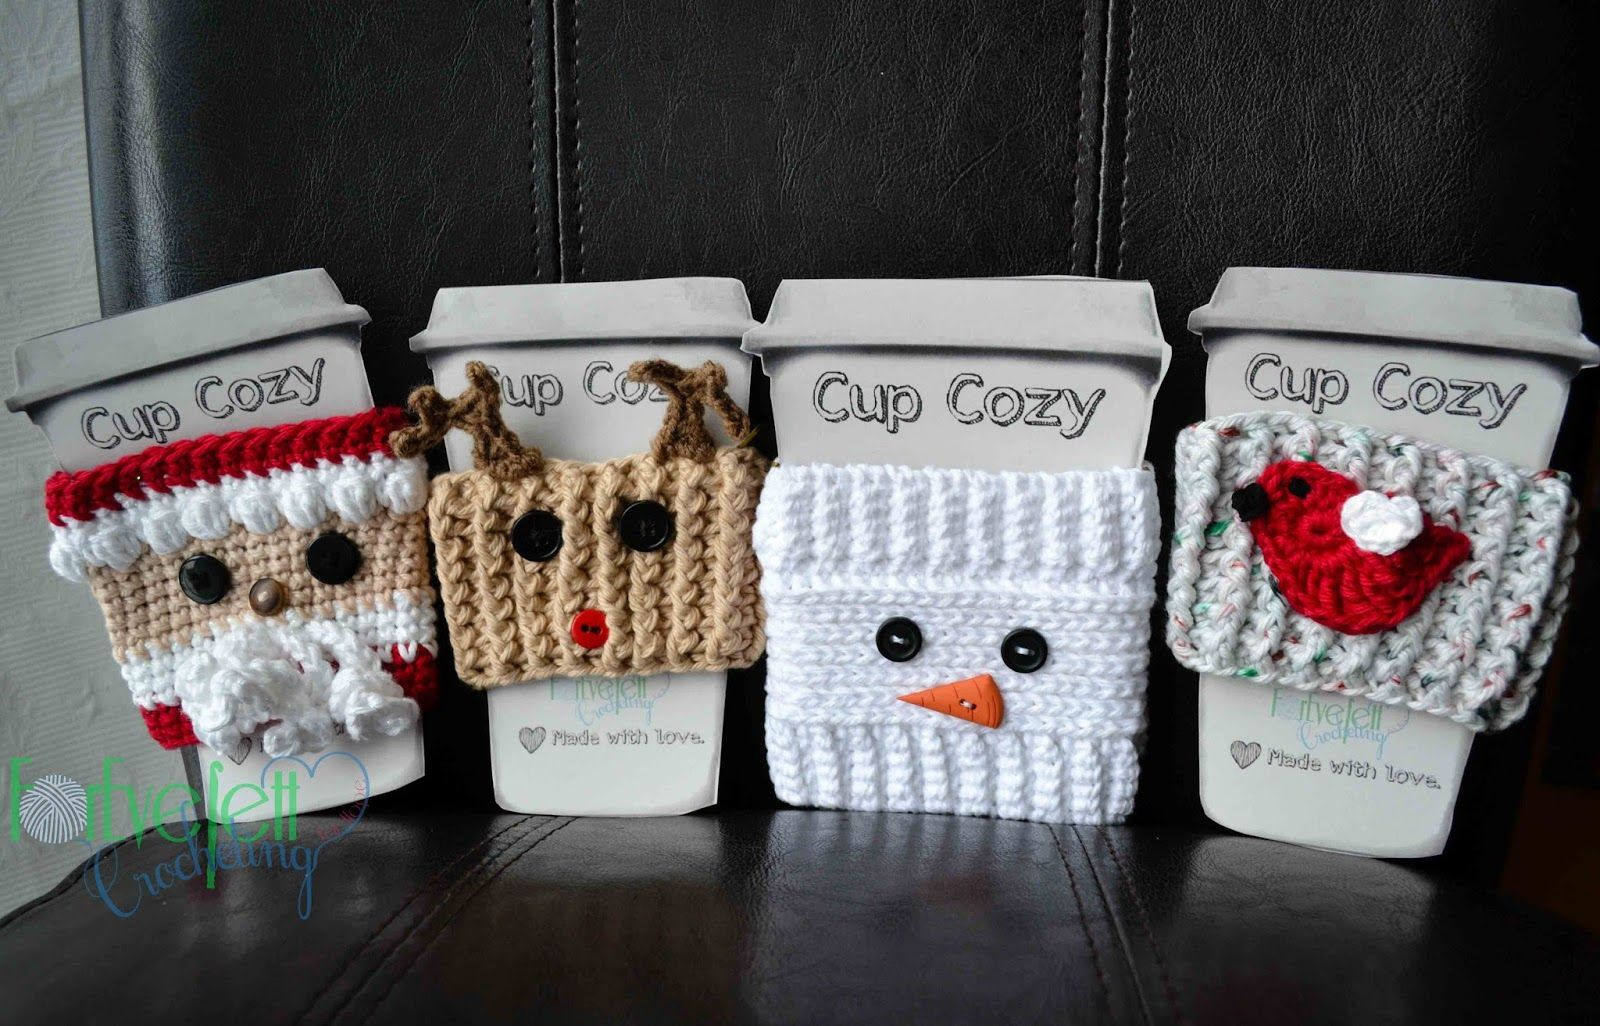 ForeverettCrocheting: Four Free Christmas Cozy patterns